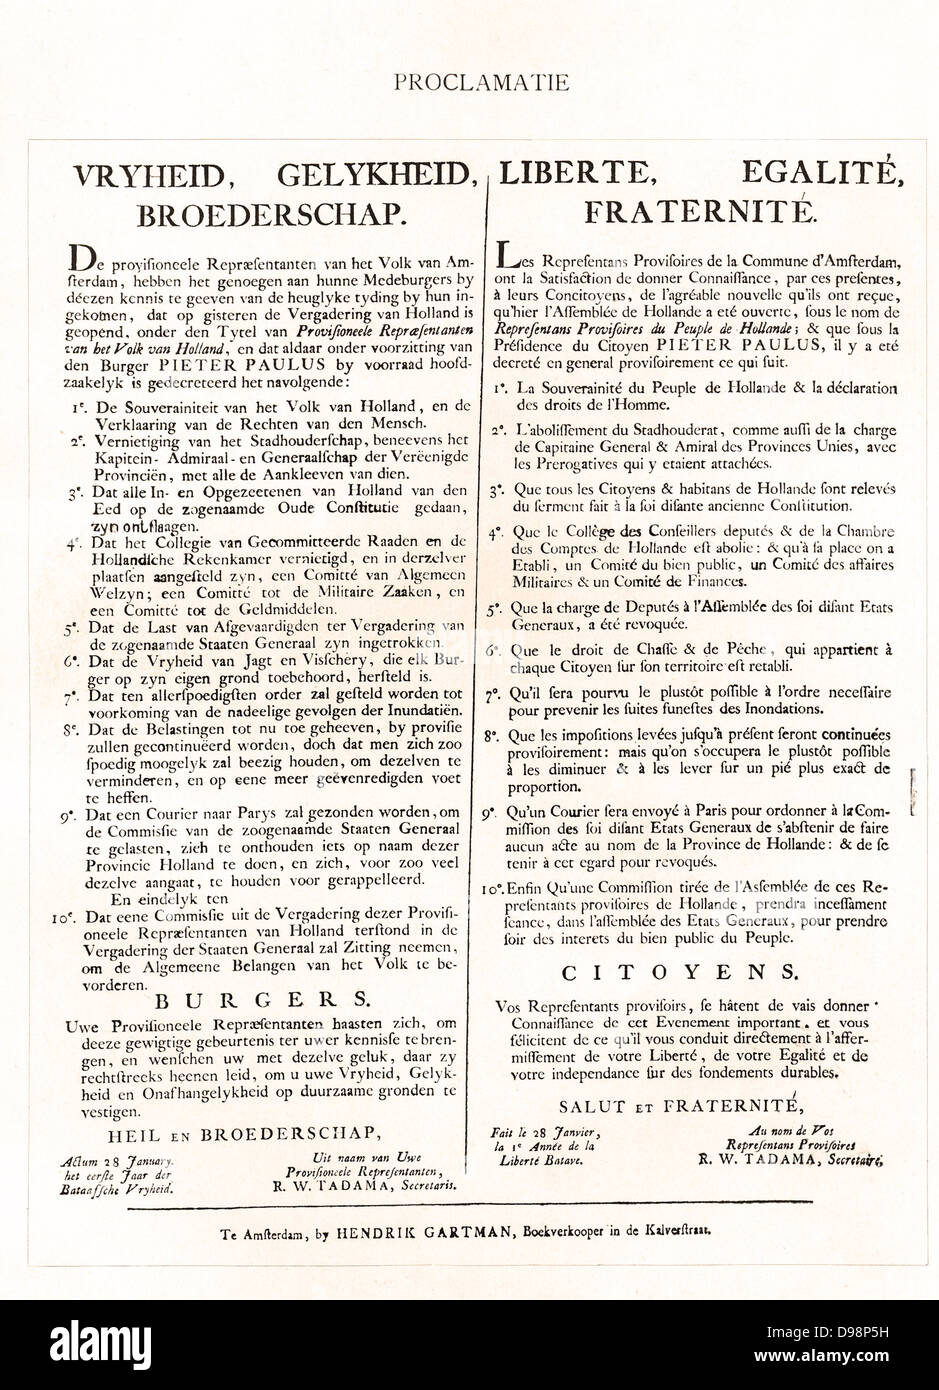 Publication in the Netherlands of a French and Dutch version of the Proclamation of rights in the aftermath of the - Stock Image